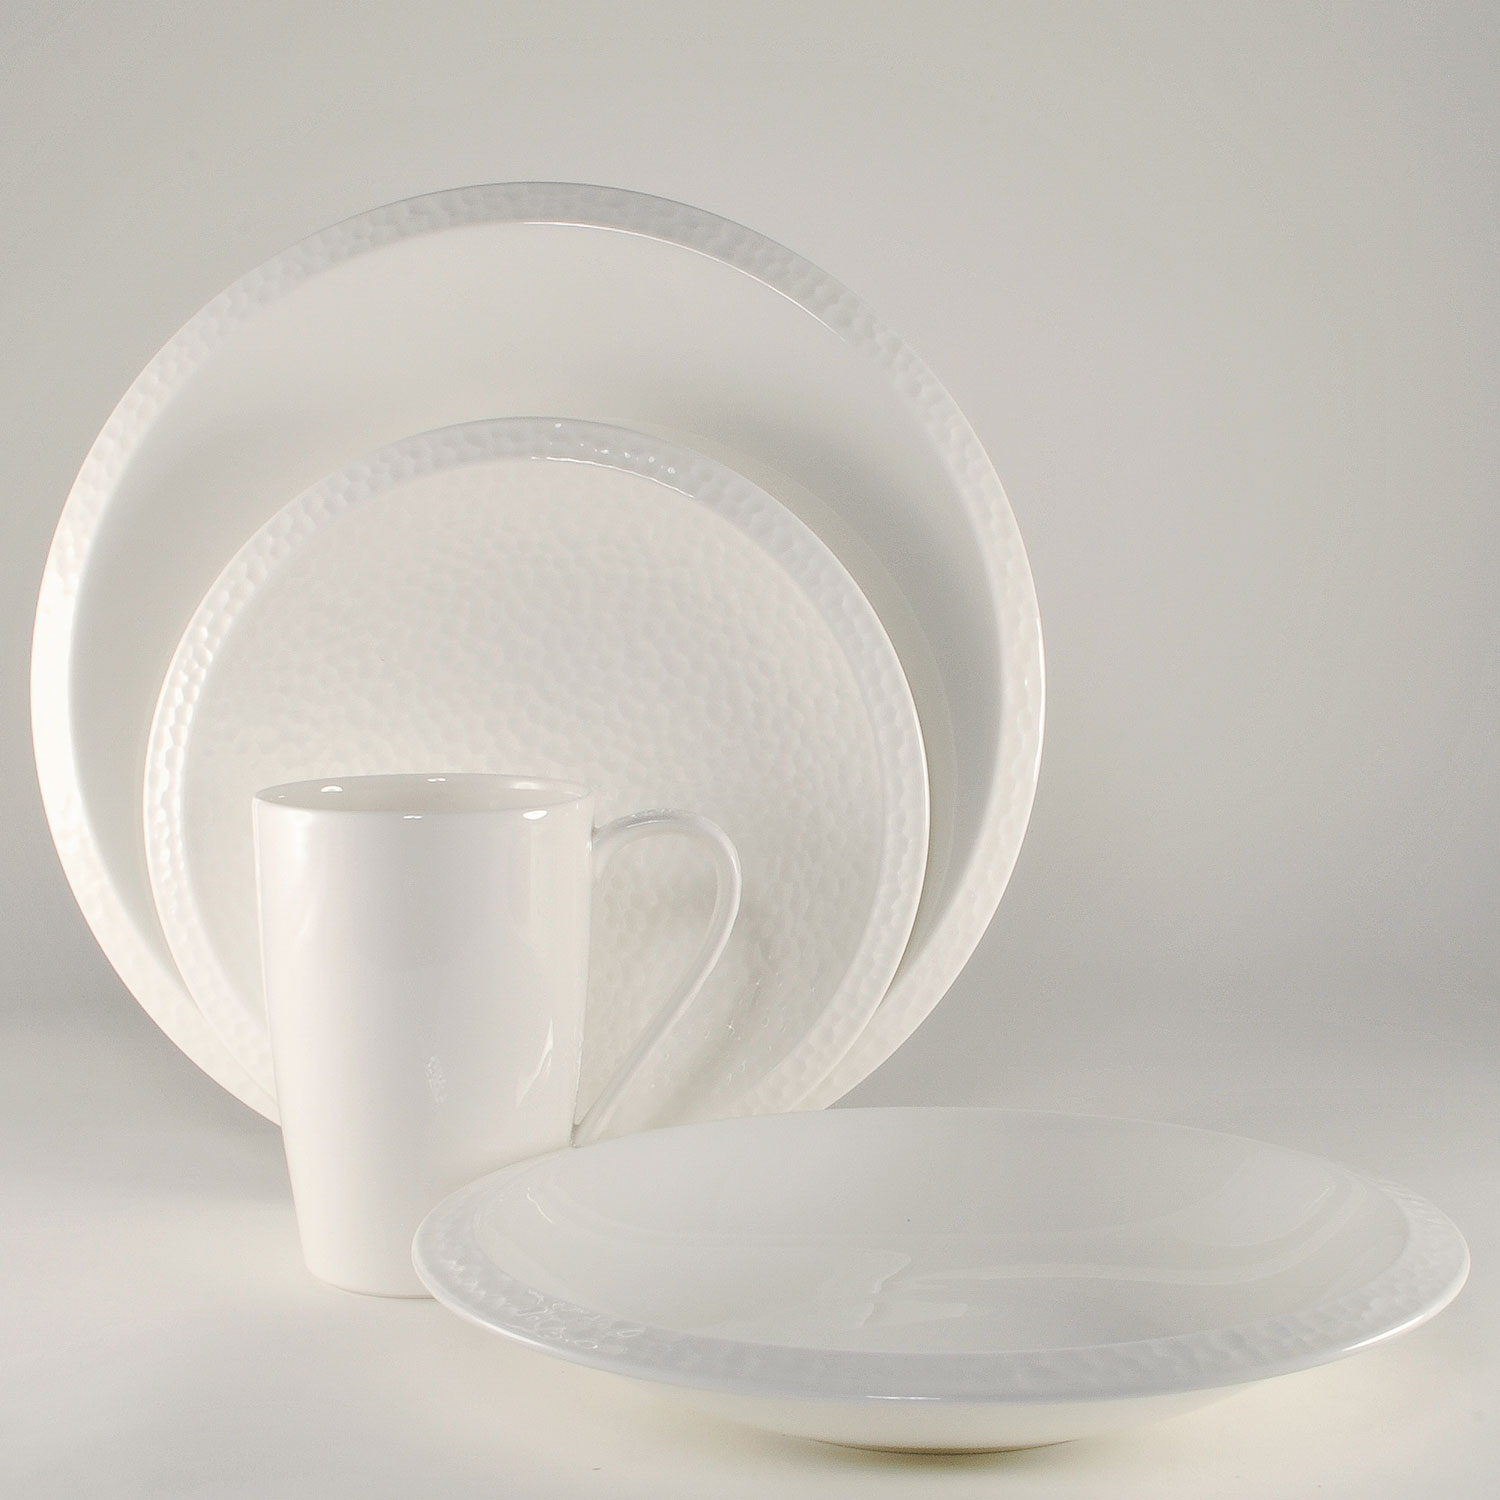 4 Piece Place Setting - Rim Soup Bowl